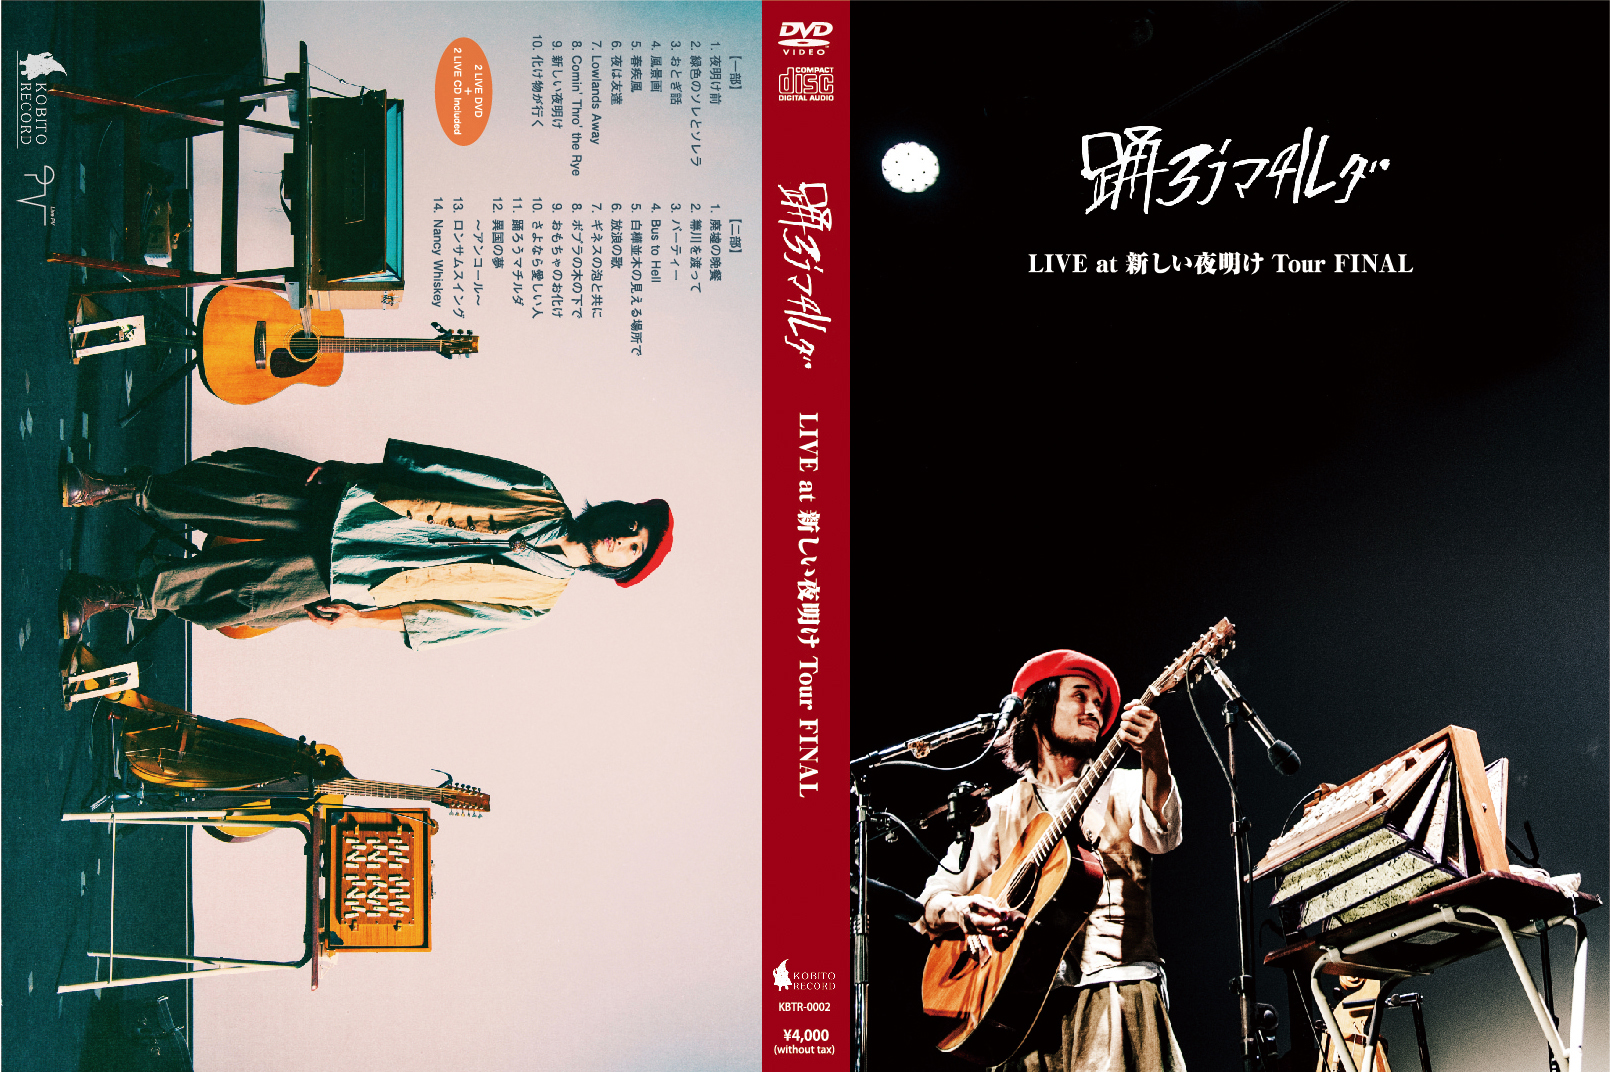 LIVE AT 新しい夜明け TOUR FINAL(LIVE DVD + LIVE CD)